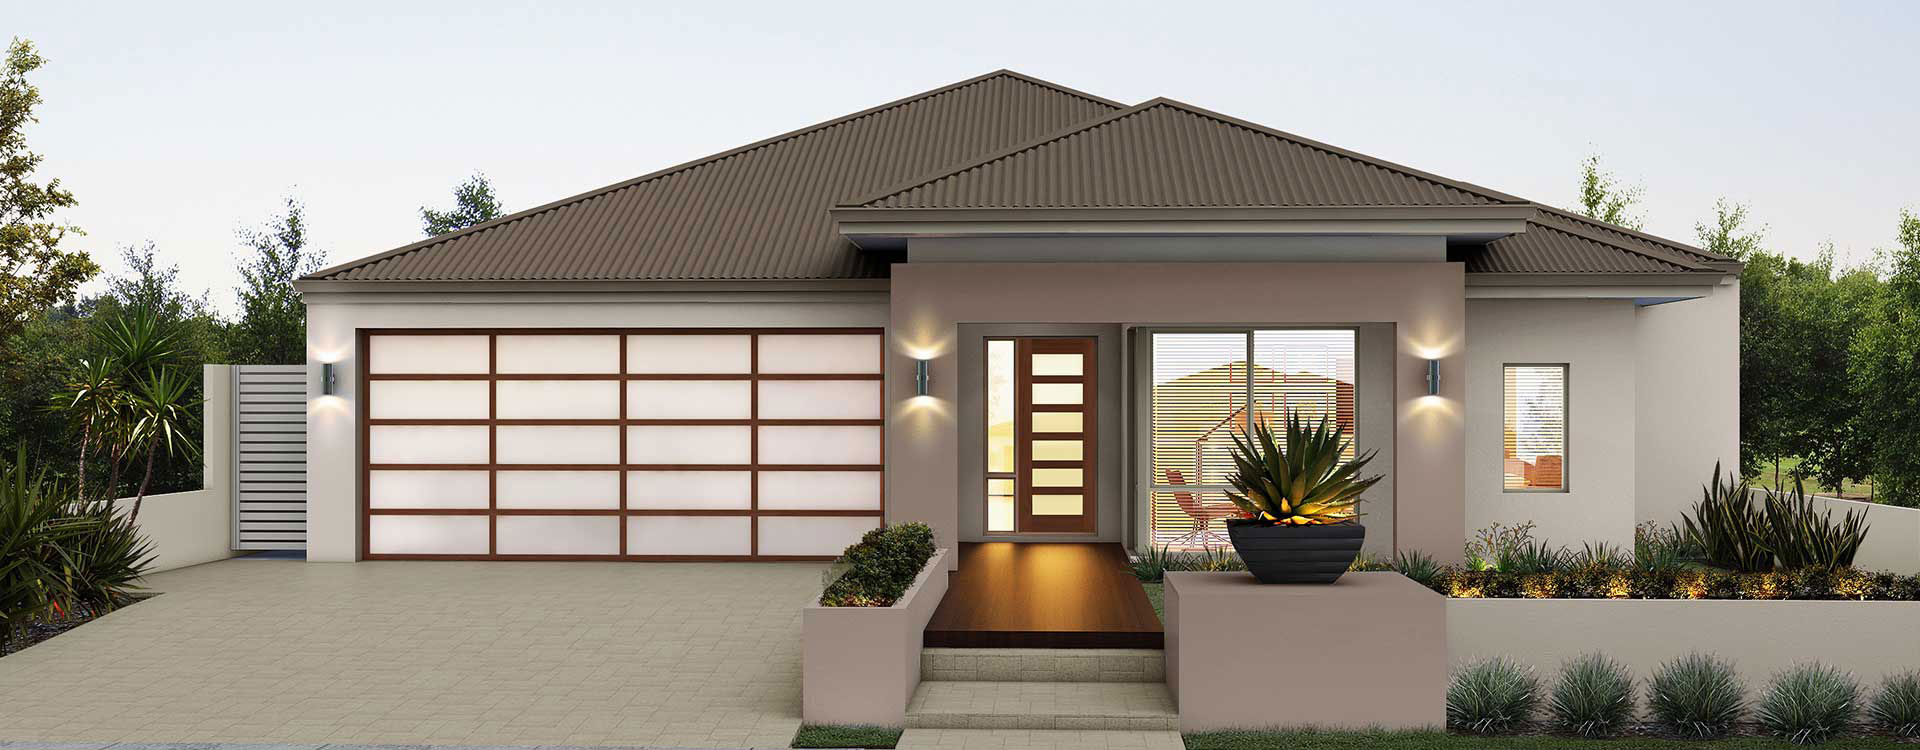 "House frontage of single storey home design ""My Prevelly"""